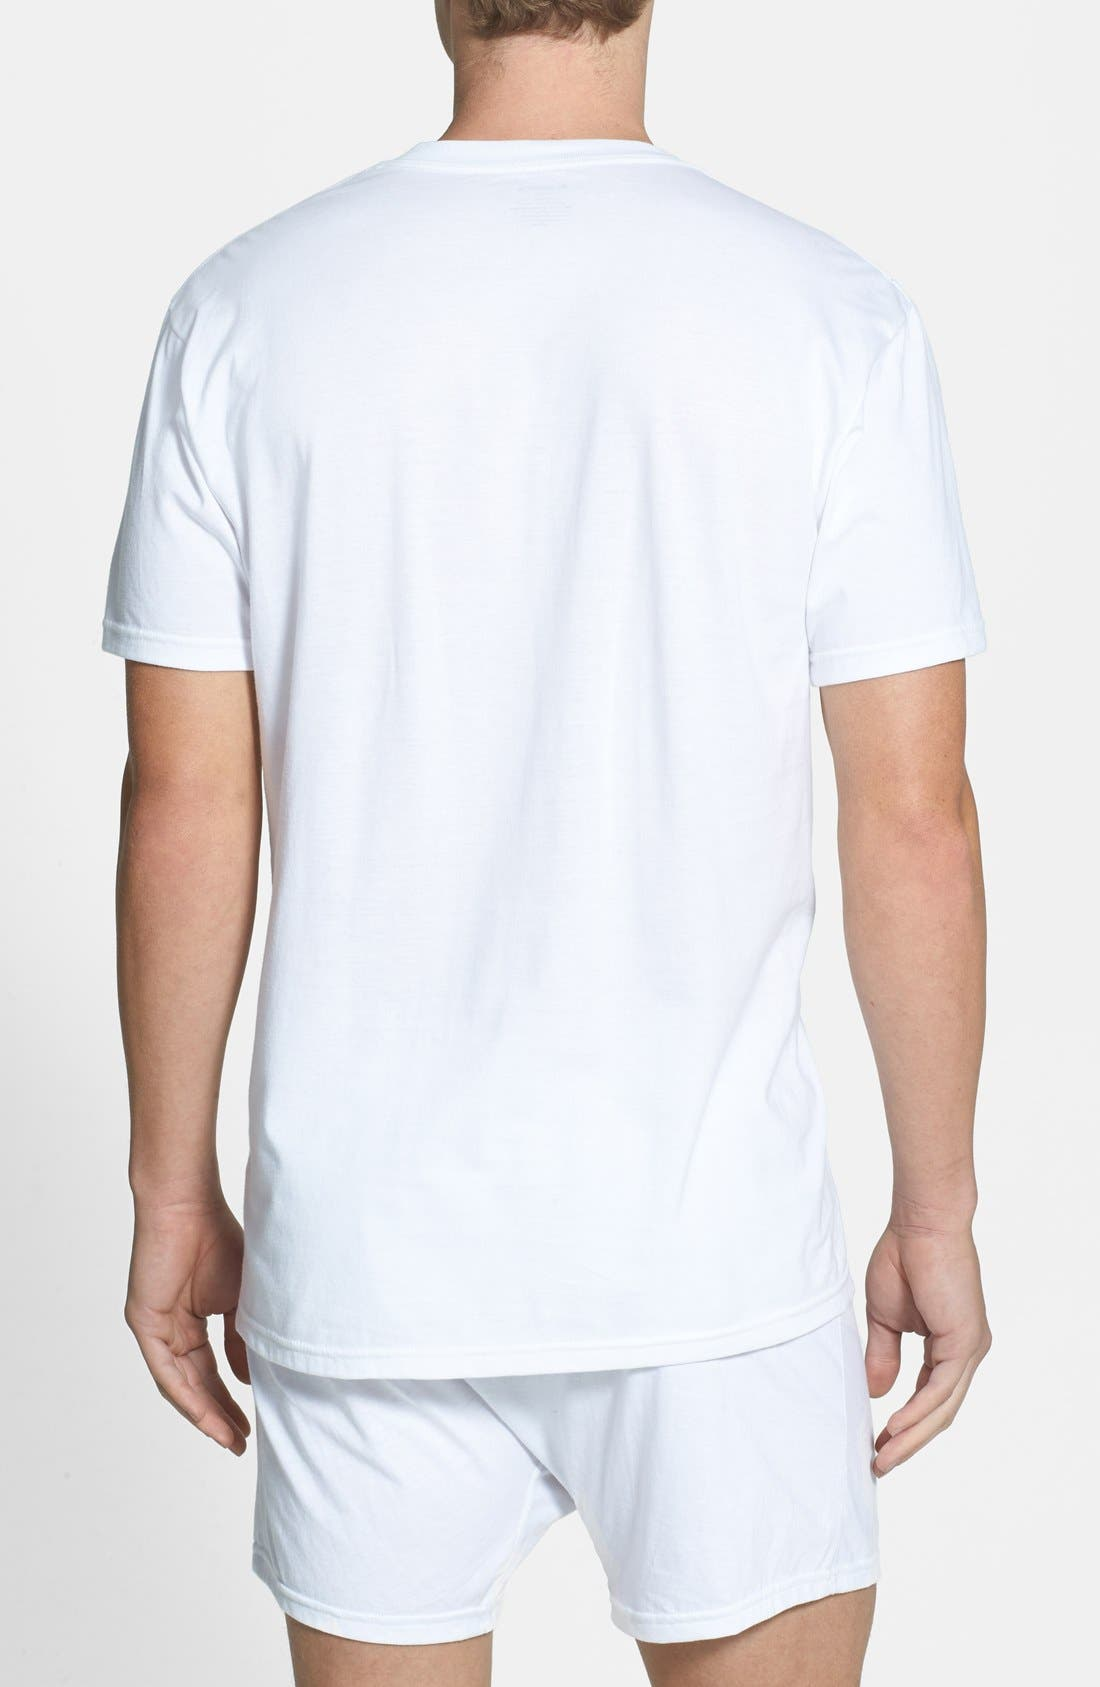 Regular Fit 4-Pack Supima<sup>®</sup> Cotton T-Shirts,                             Alternate thumbnail 8, color,                             WHITE